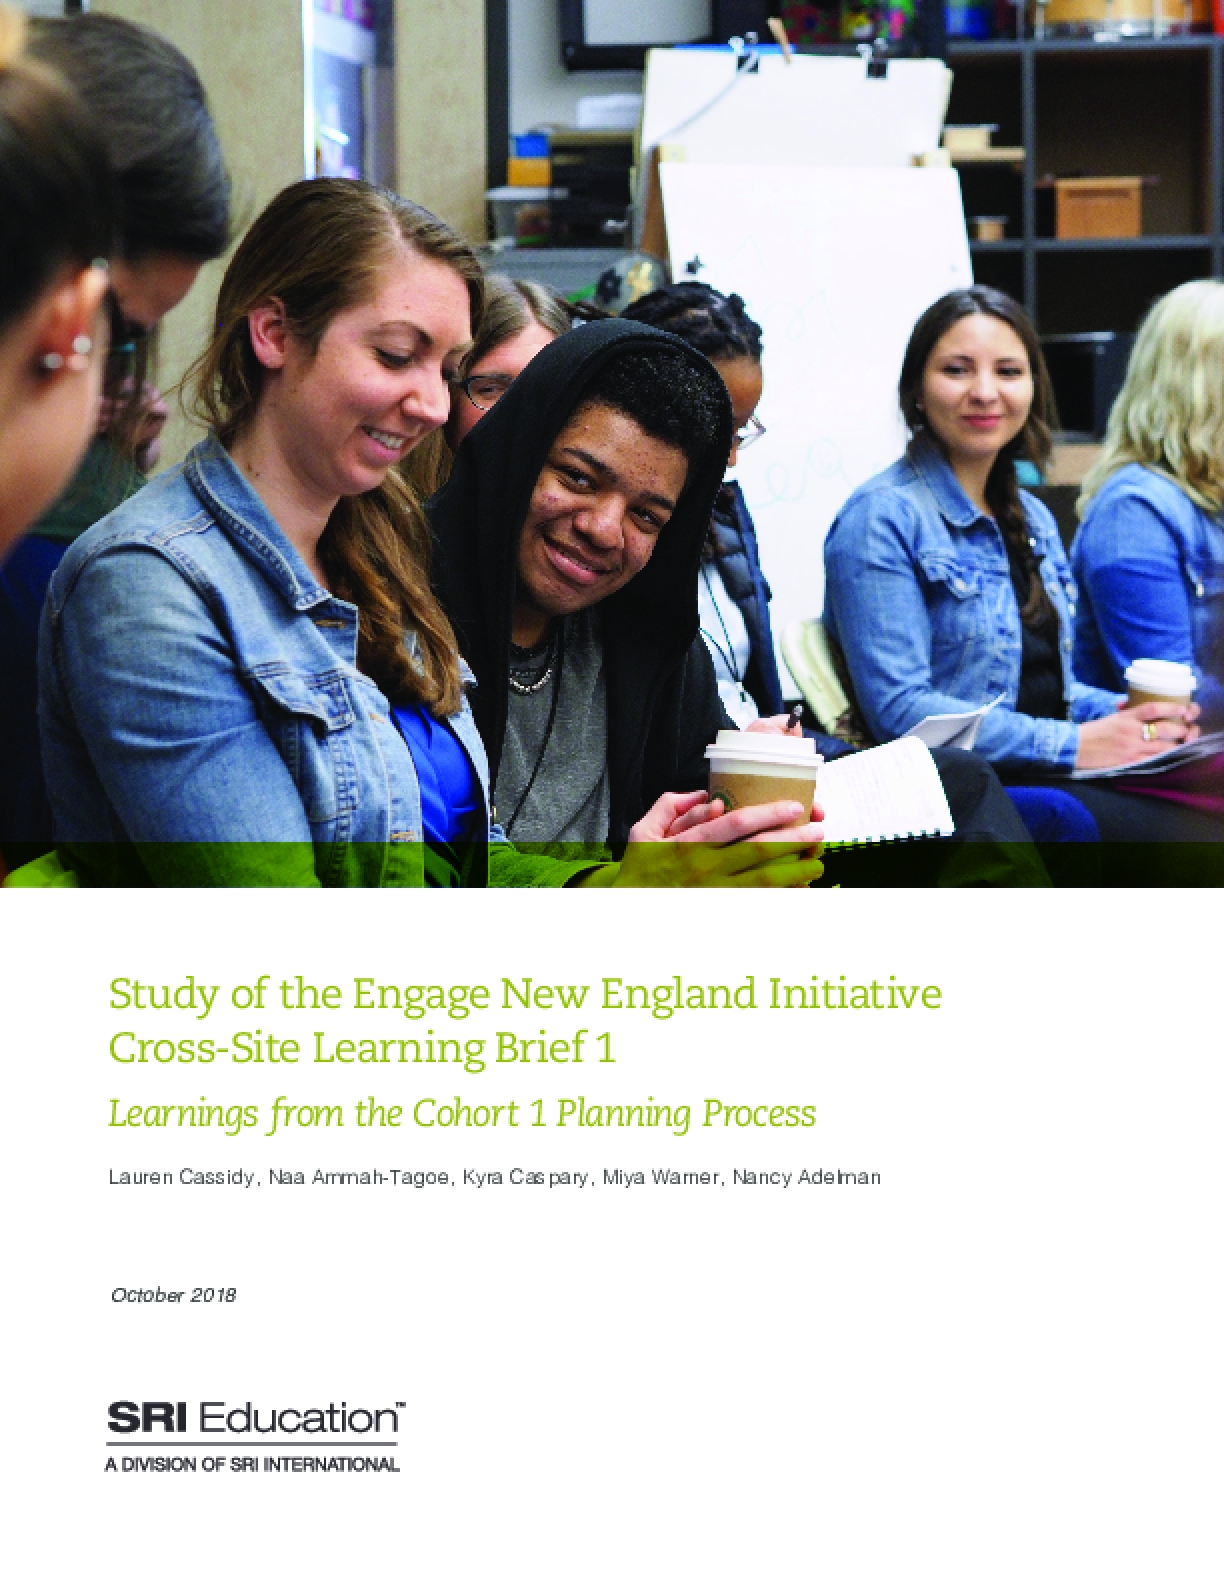 Study of the Engage New England initiative, cross-site learning brief 1: Learnings from the cohort 1 planning process.